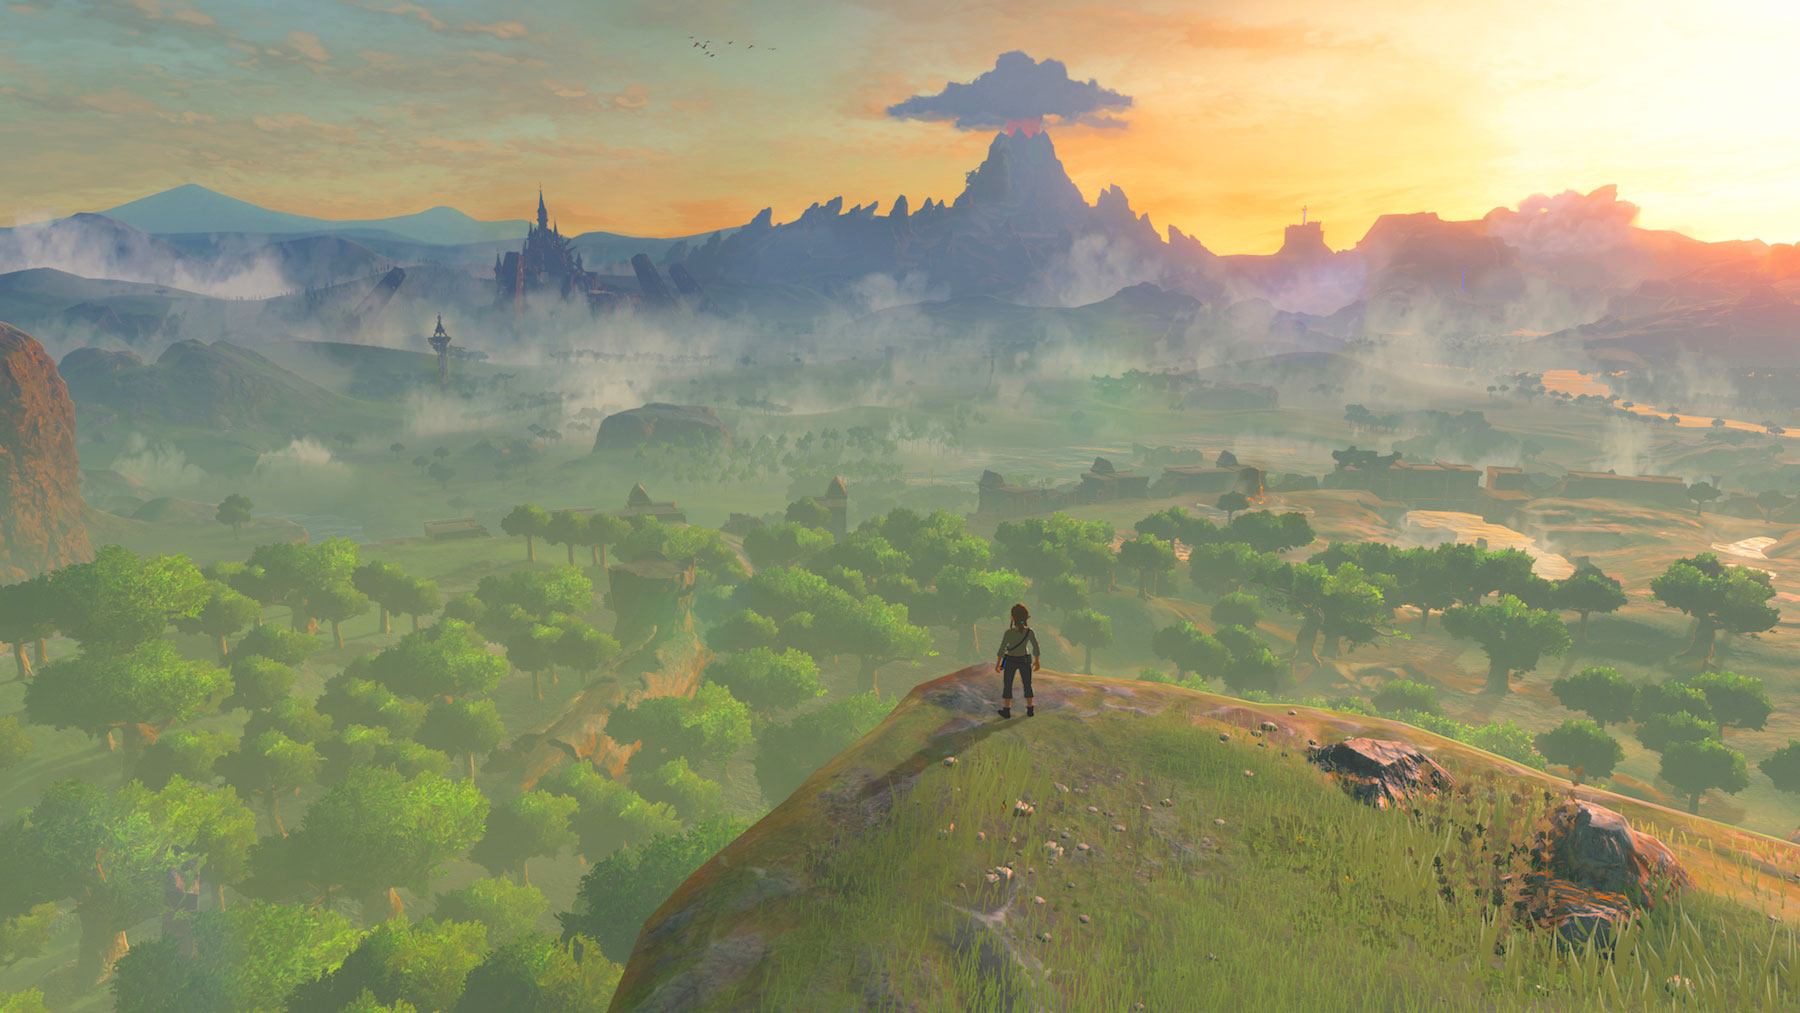 The new Zelda 'Breath of the Wild' trailers are the best yet